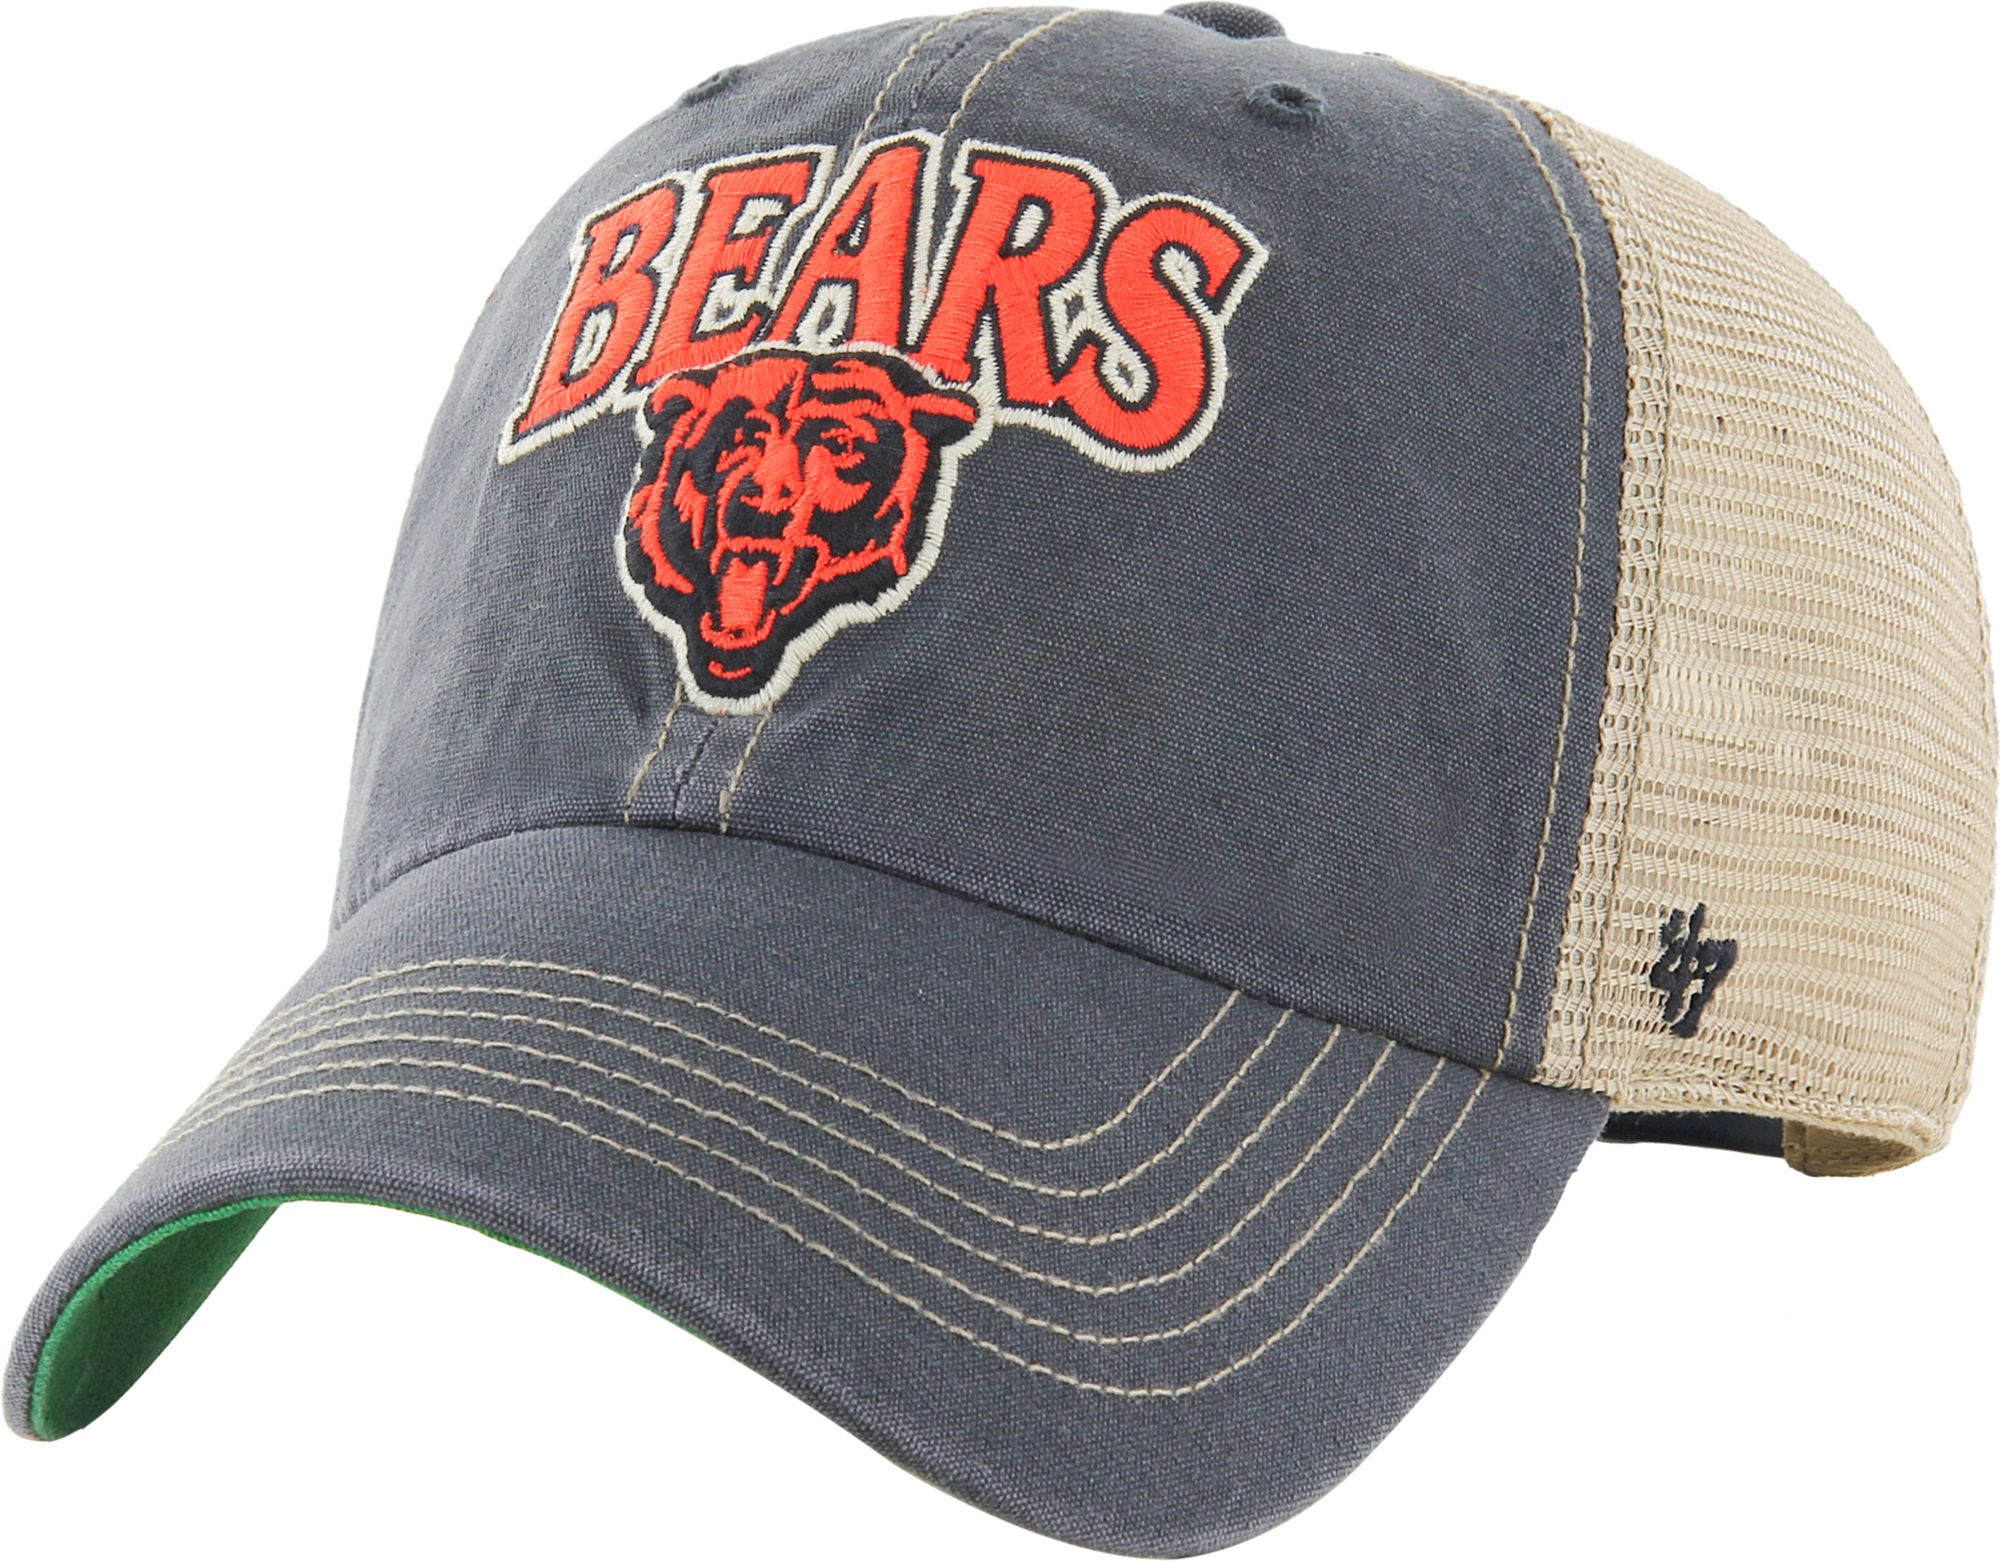 eebcfdb33 47 Men s Chicago Bears Vintage Tuscaloosa Navy Adjustable Hat ...